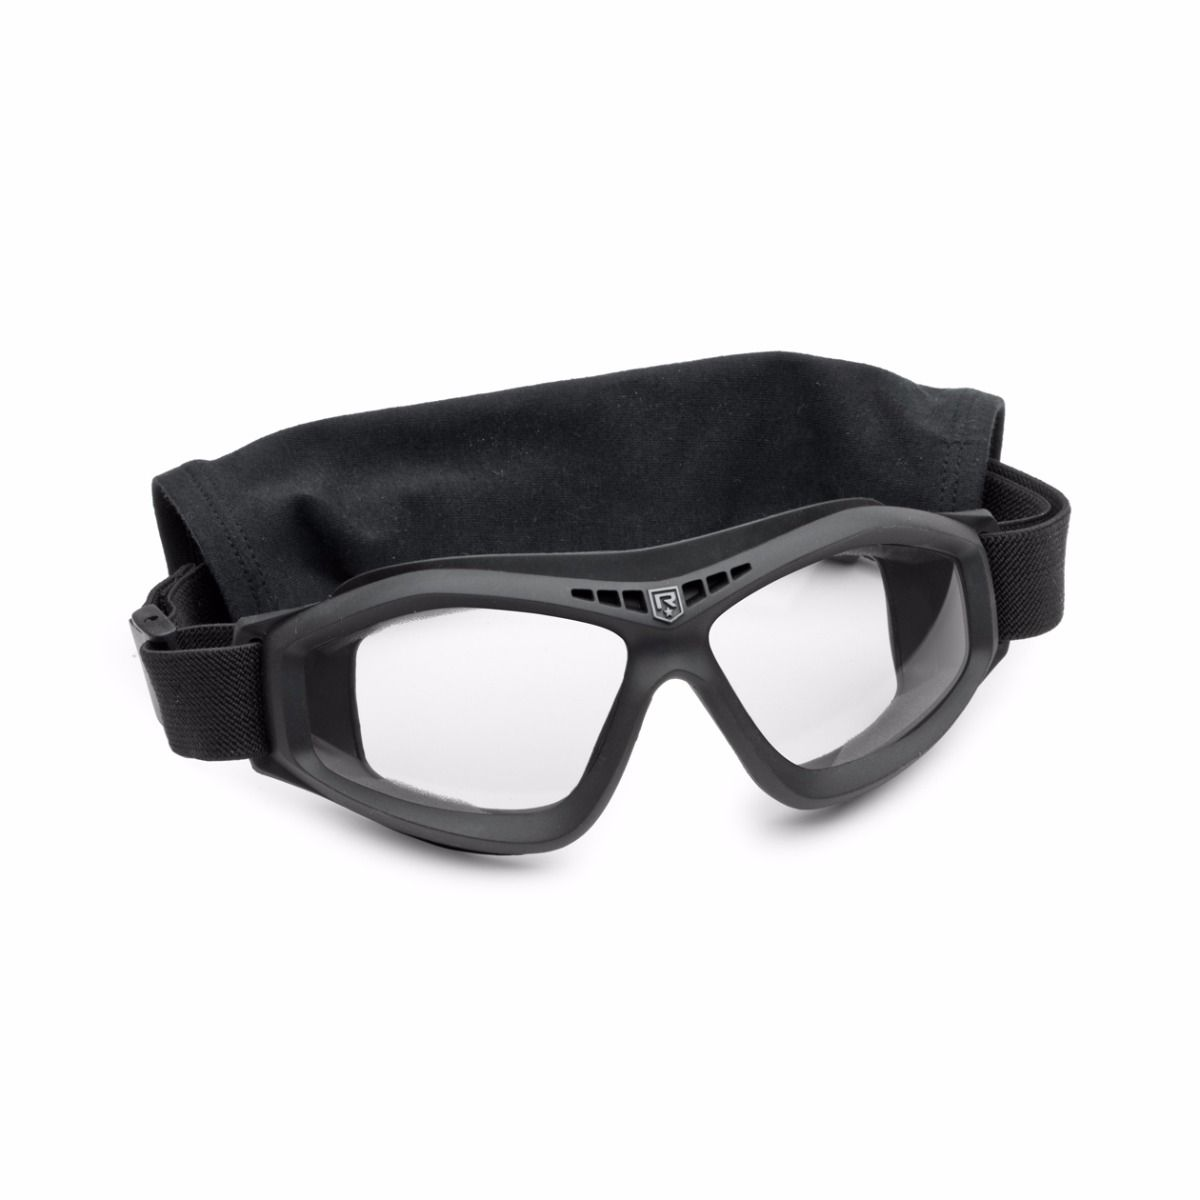 משקפי מגן בליסטיות Revision bullet ant tactical goggles